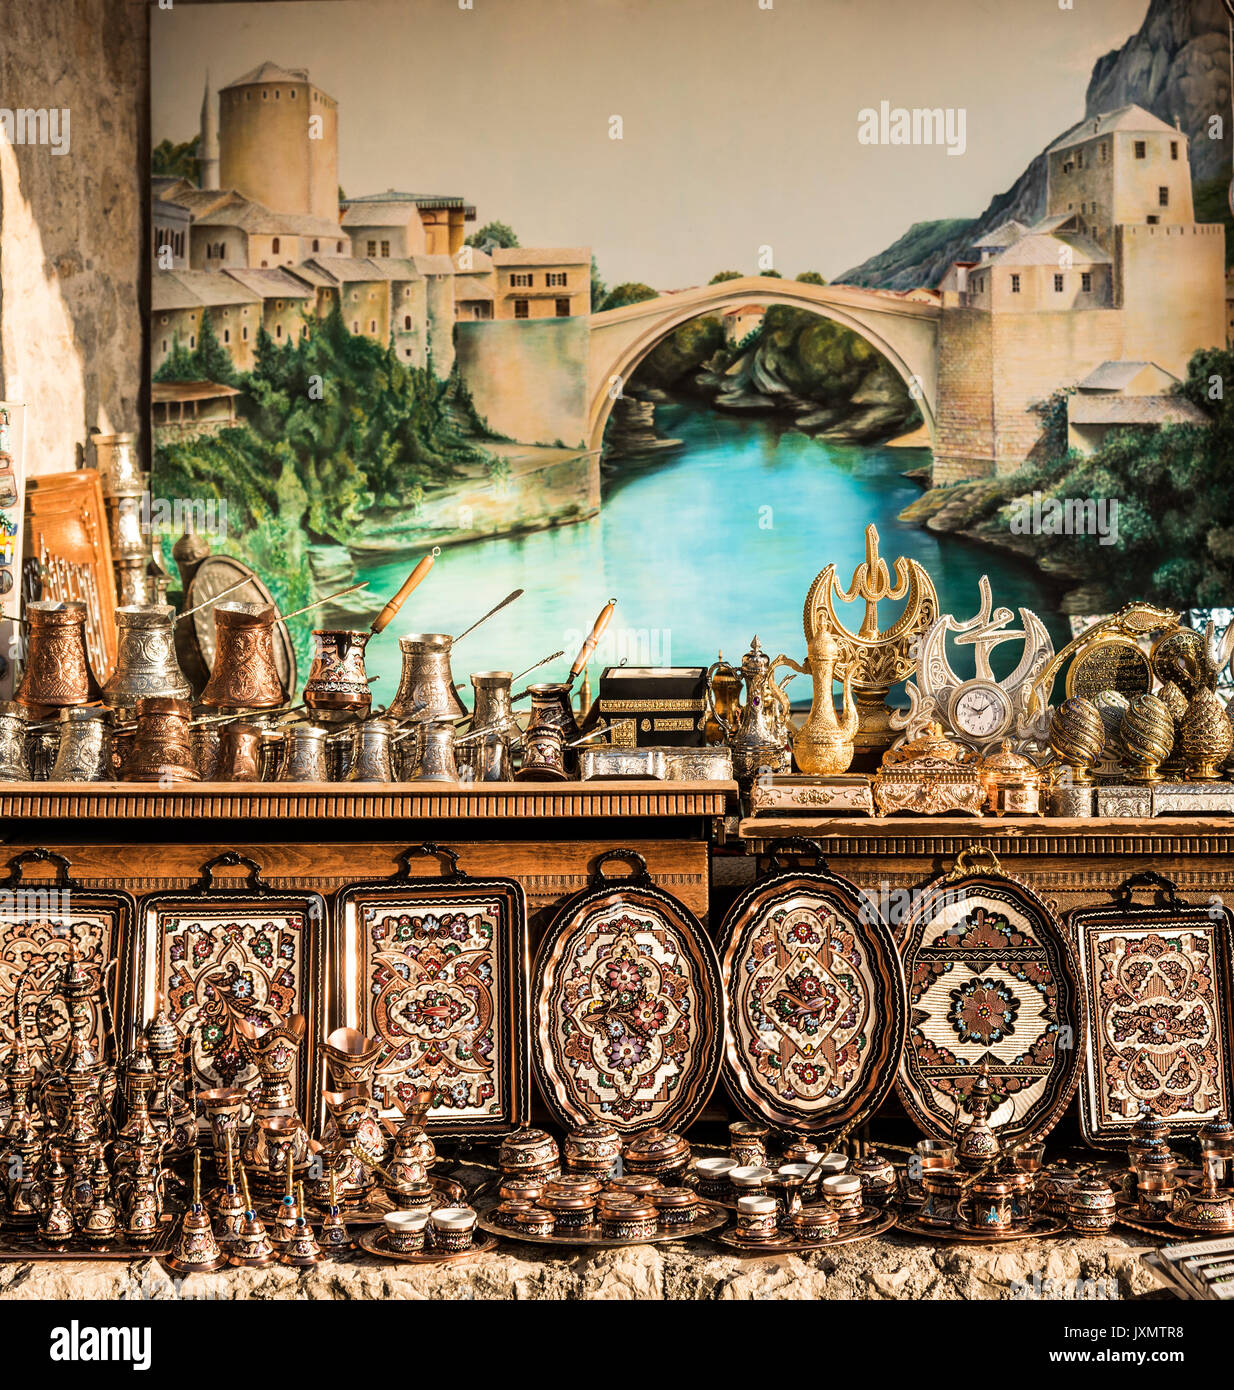 Gift shop, Mostar, Federation of Bosnia and Herzegovina, Bosnia and Herzegovina, Europe - Stock Image